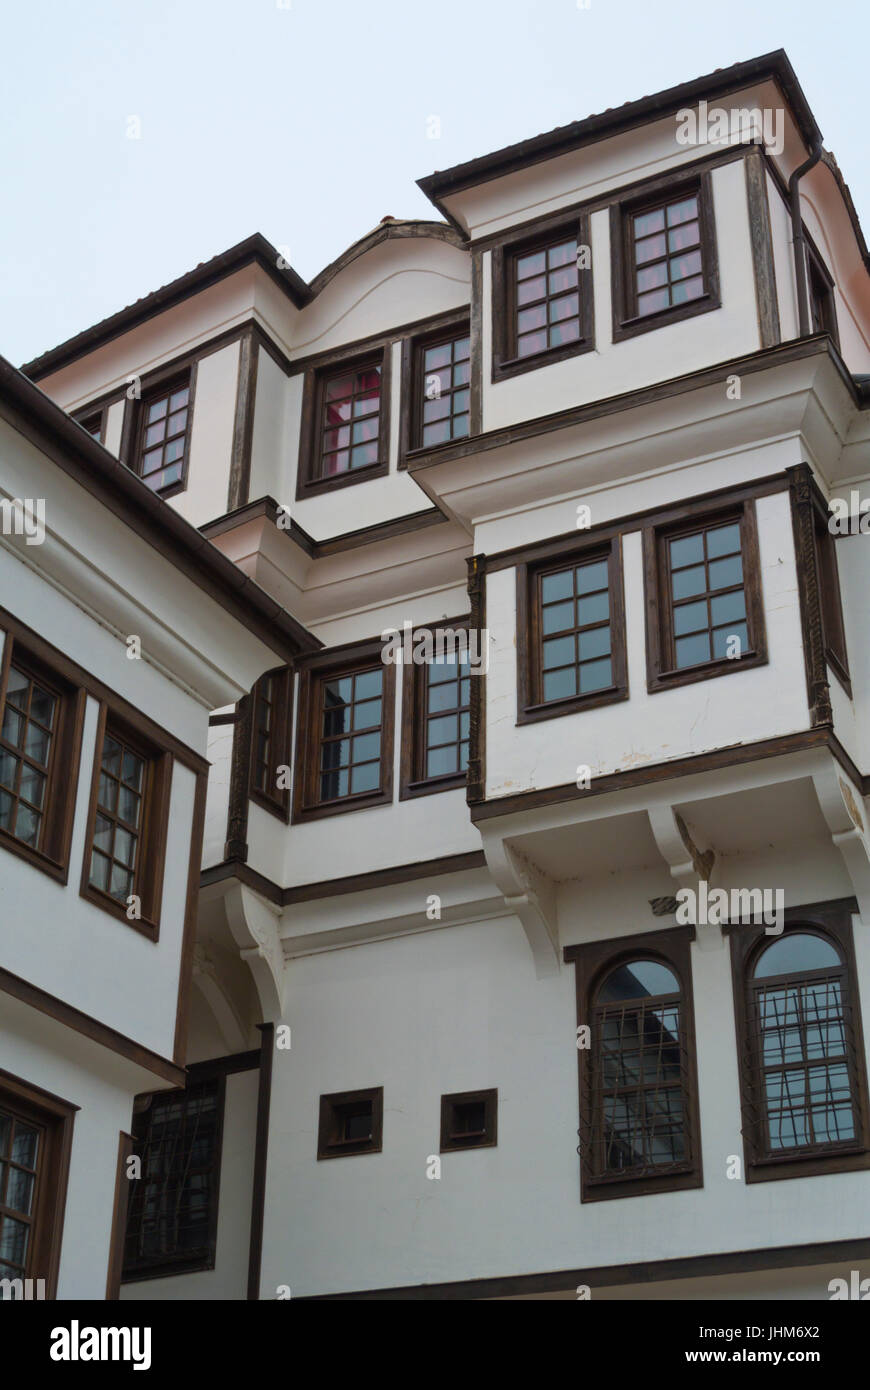 National Museum, old town, Ohrid, Macedonia - Stock Image